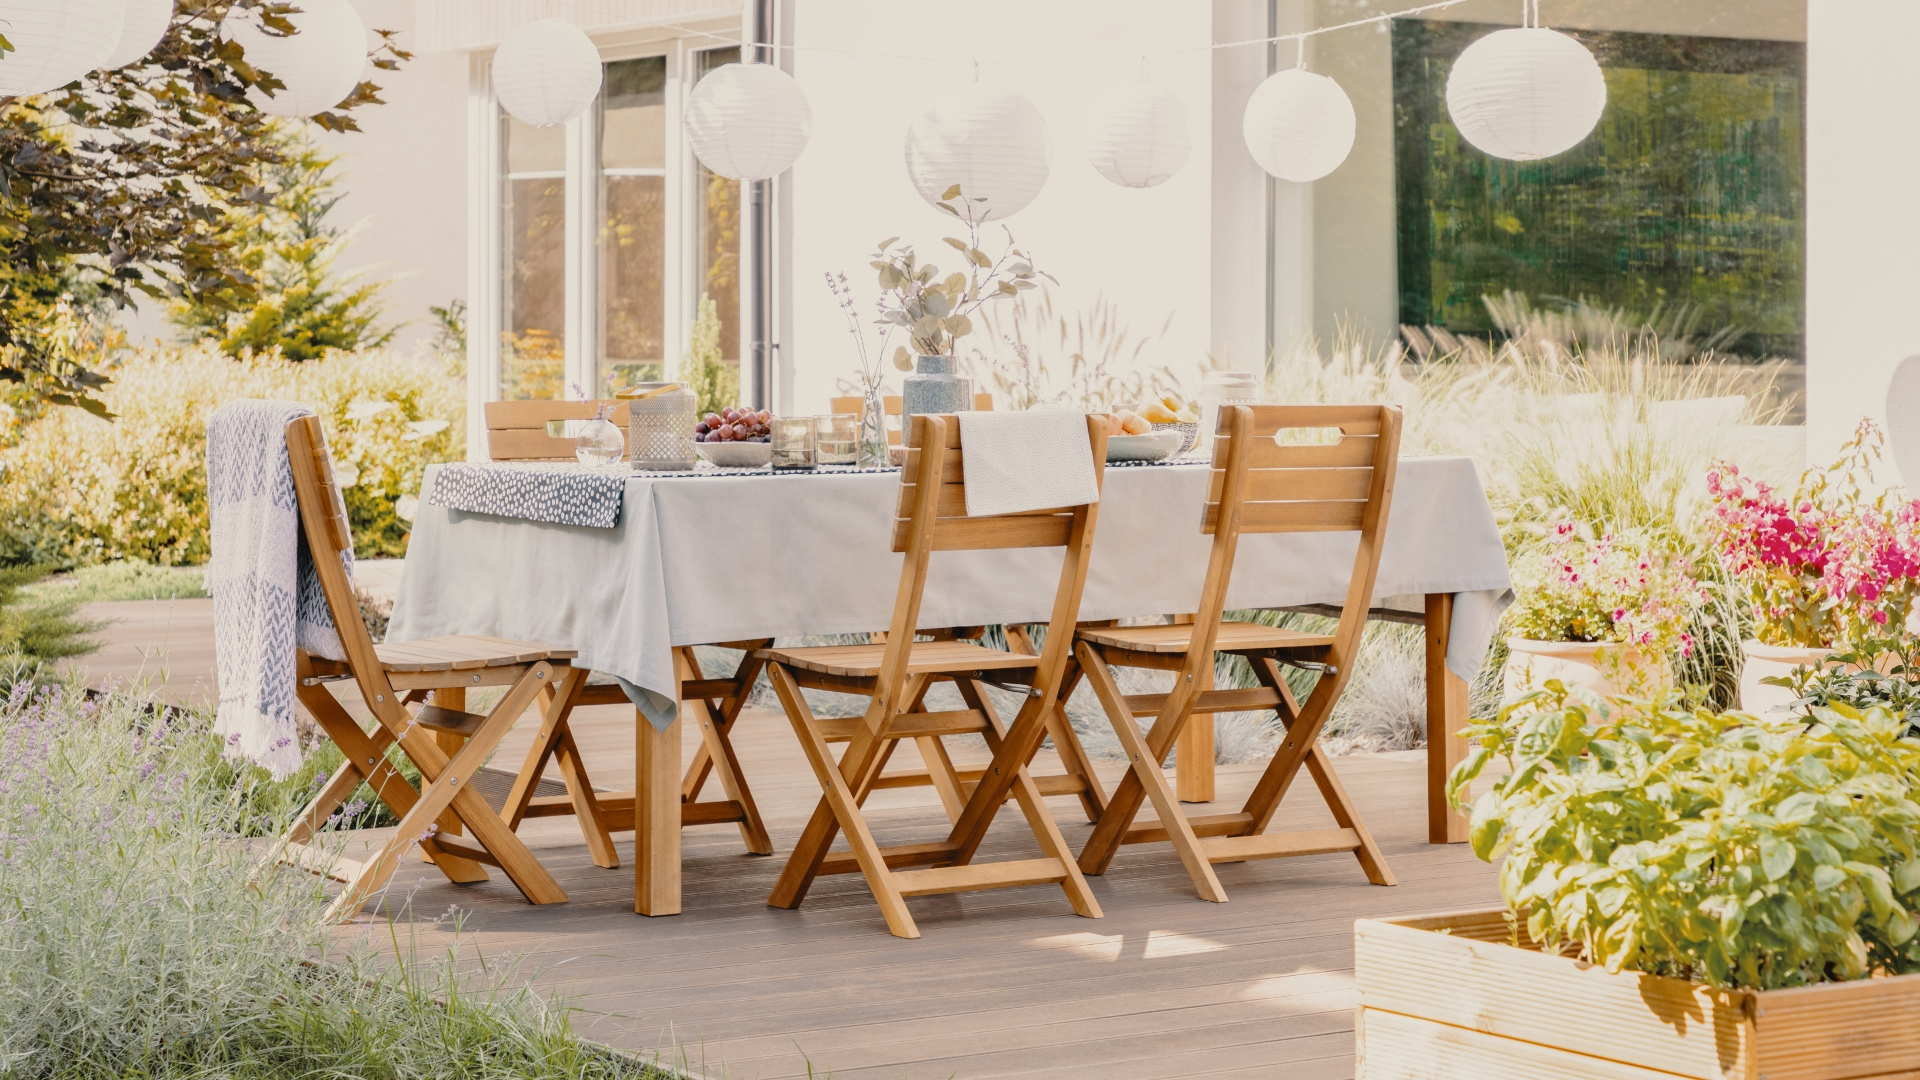 The 10 Best Dining Sets for Outdoor Living – SheKnows